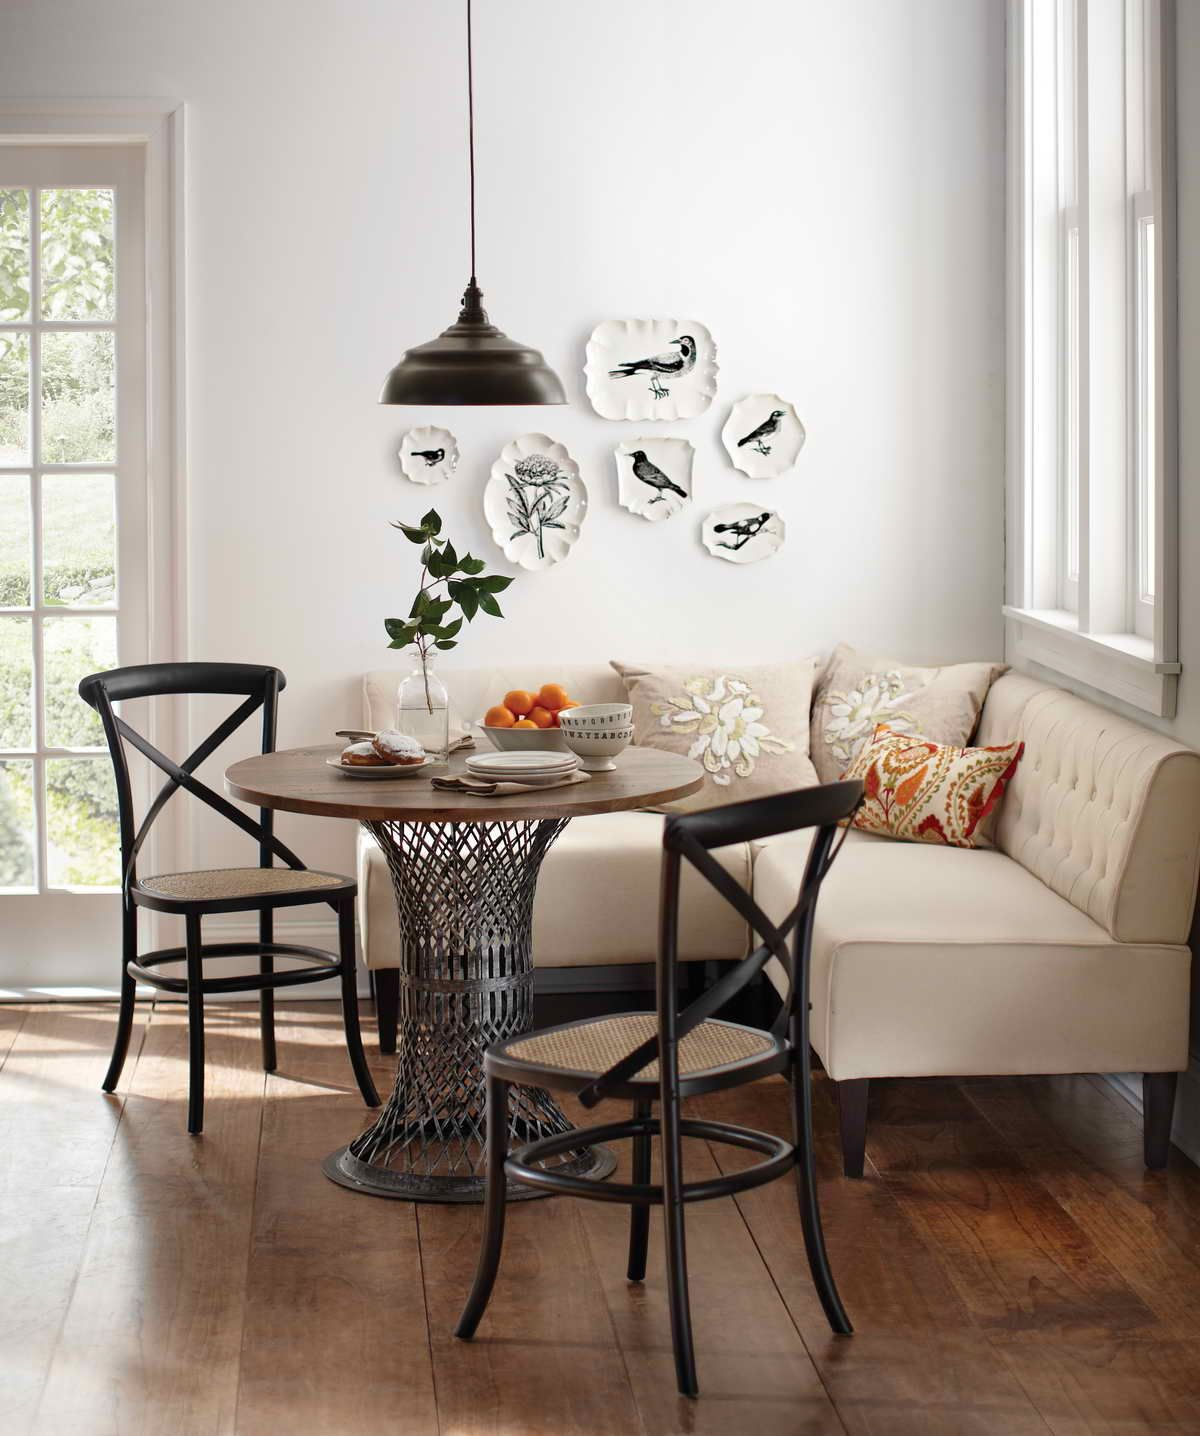 Booth Dining Room Set With The Design Of The Round Table